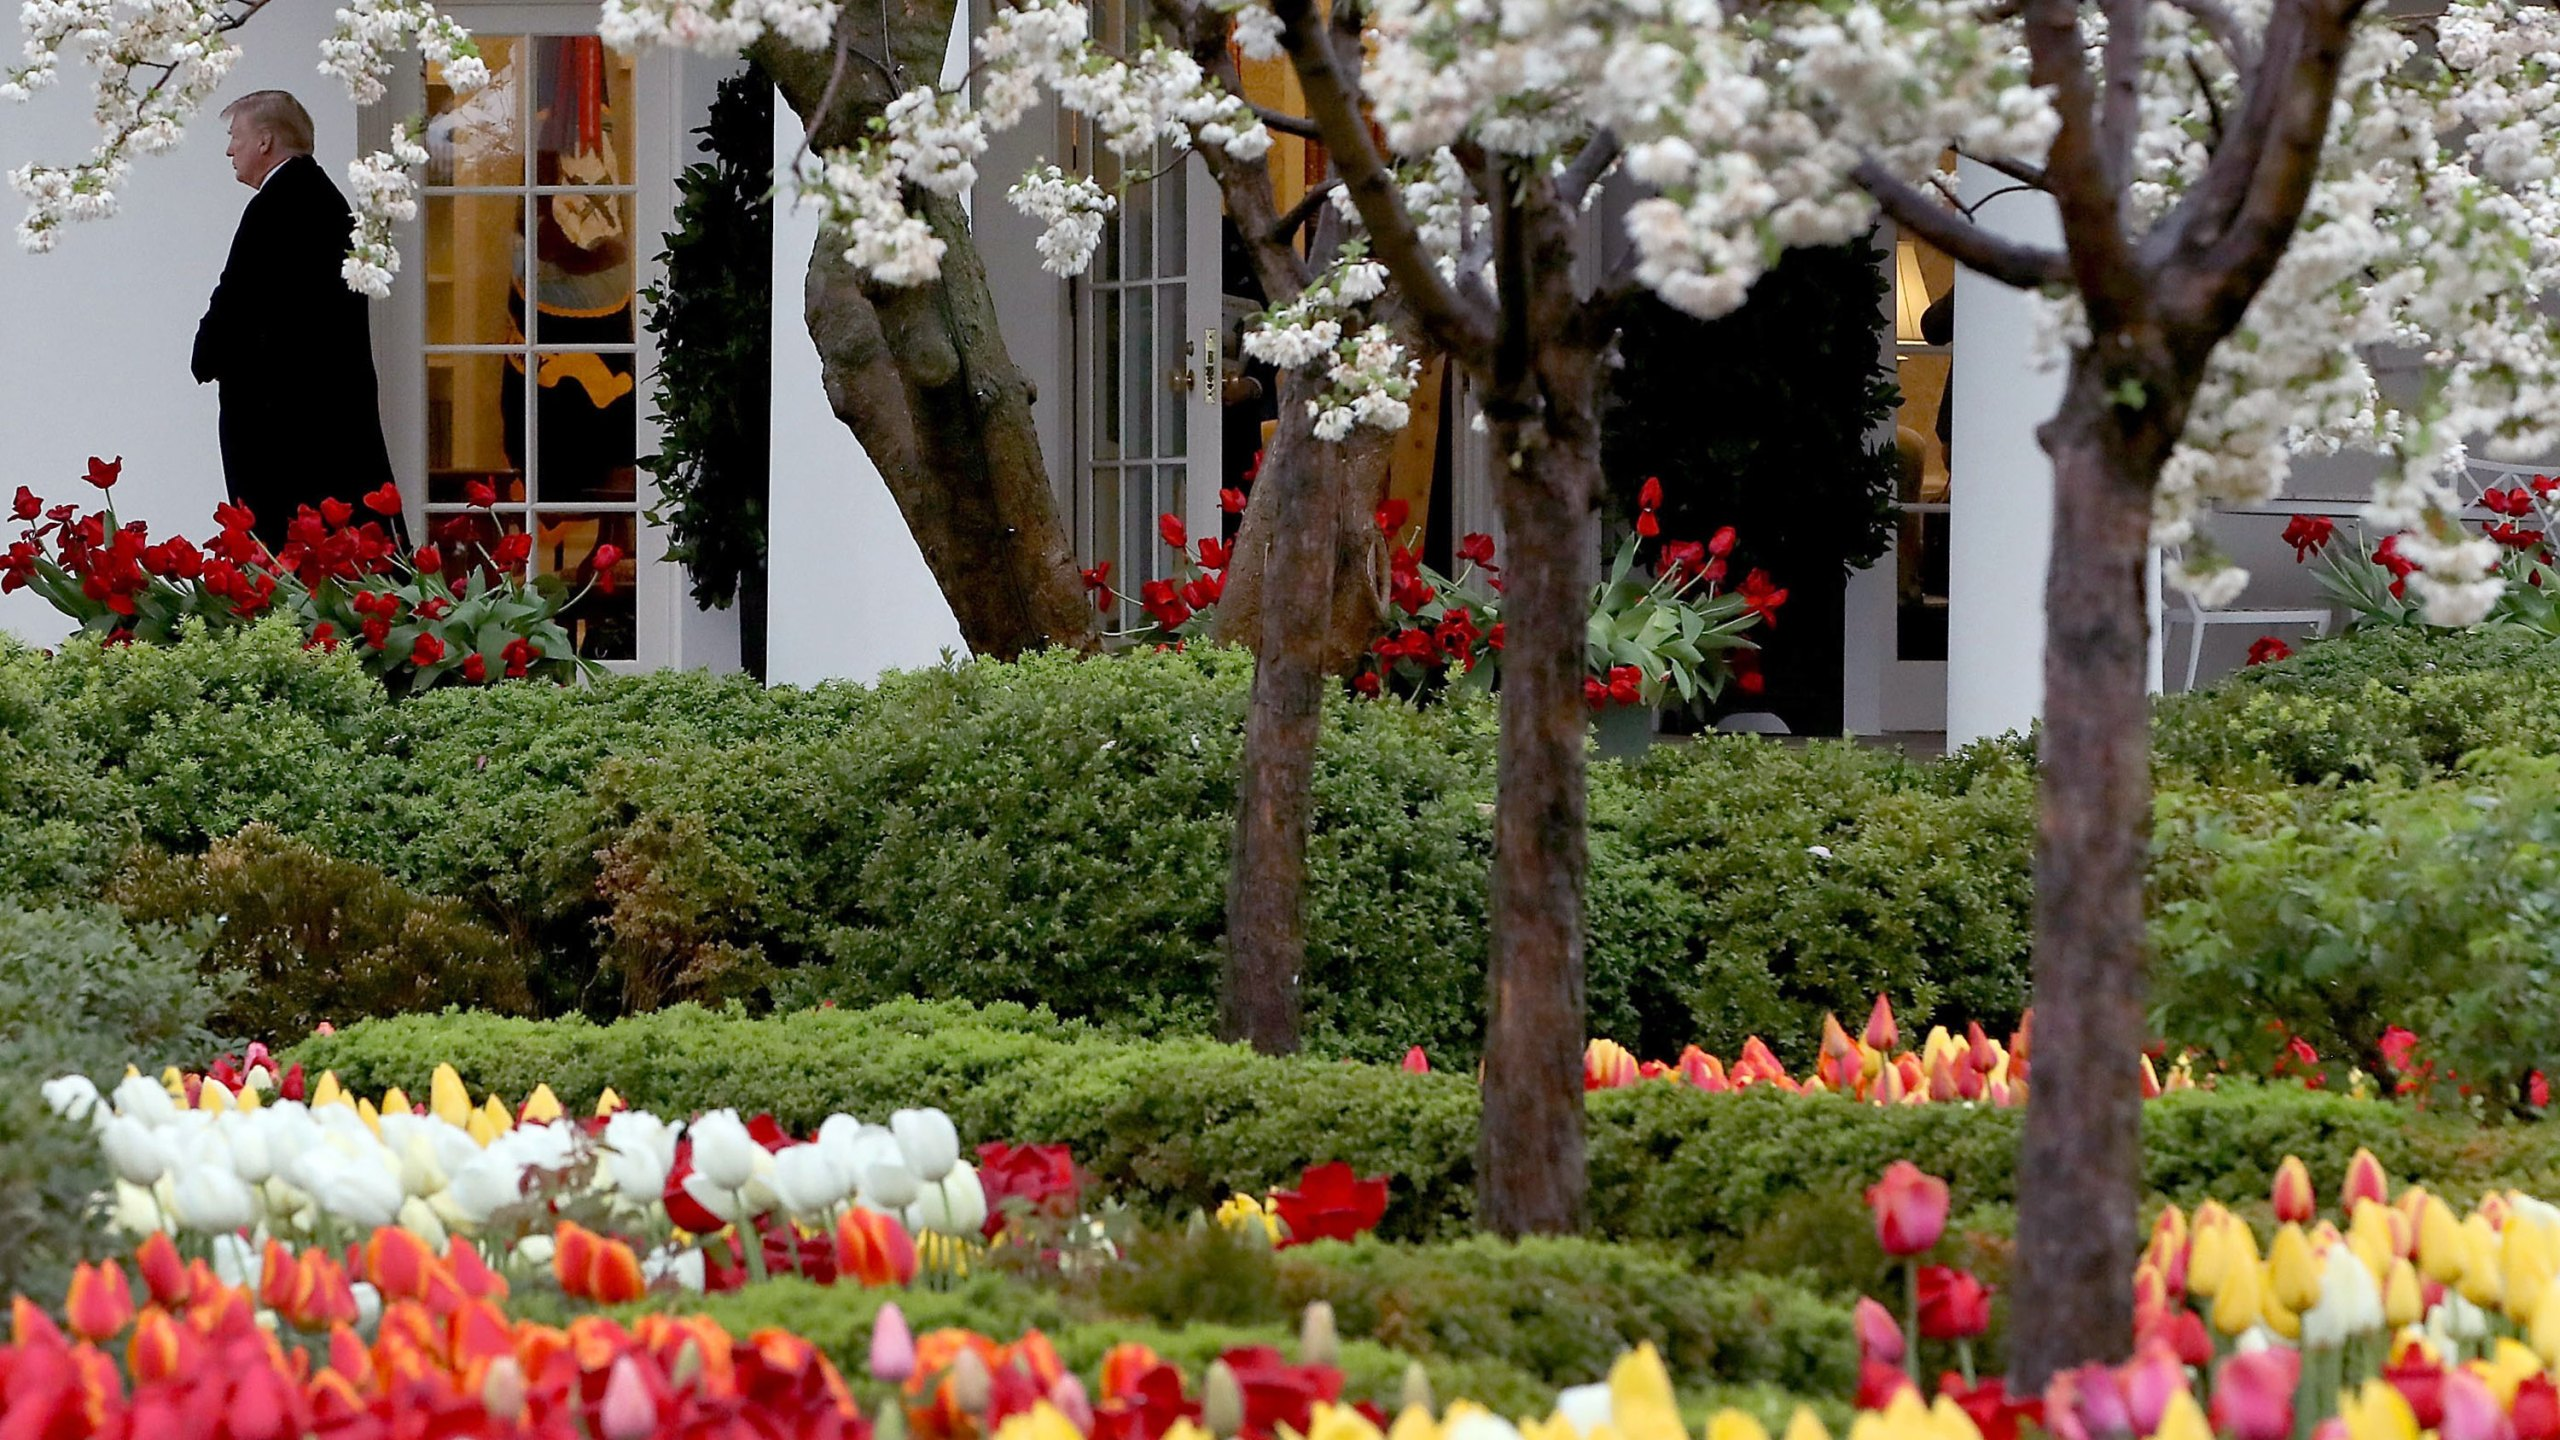 Flowers are in bloom in the Rose Garden as President Donald Trump walks out of the Oval Office toward Marine One while departing from the White House, on April 16, 2018 in Washington, DC. (Mark Wilson/Getty Images)